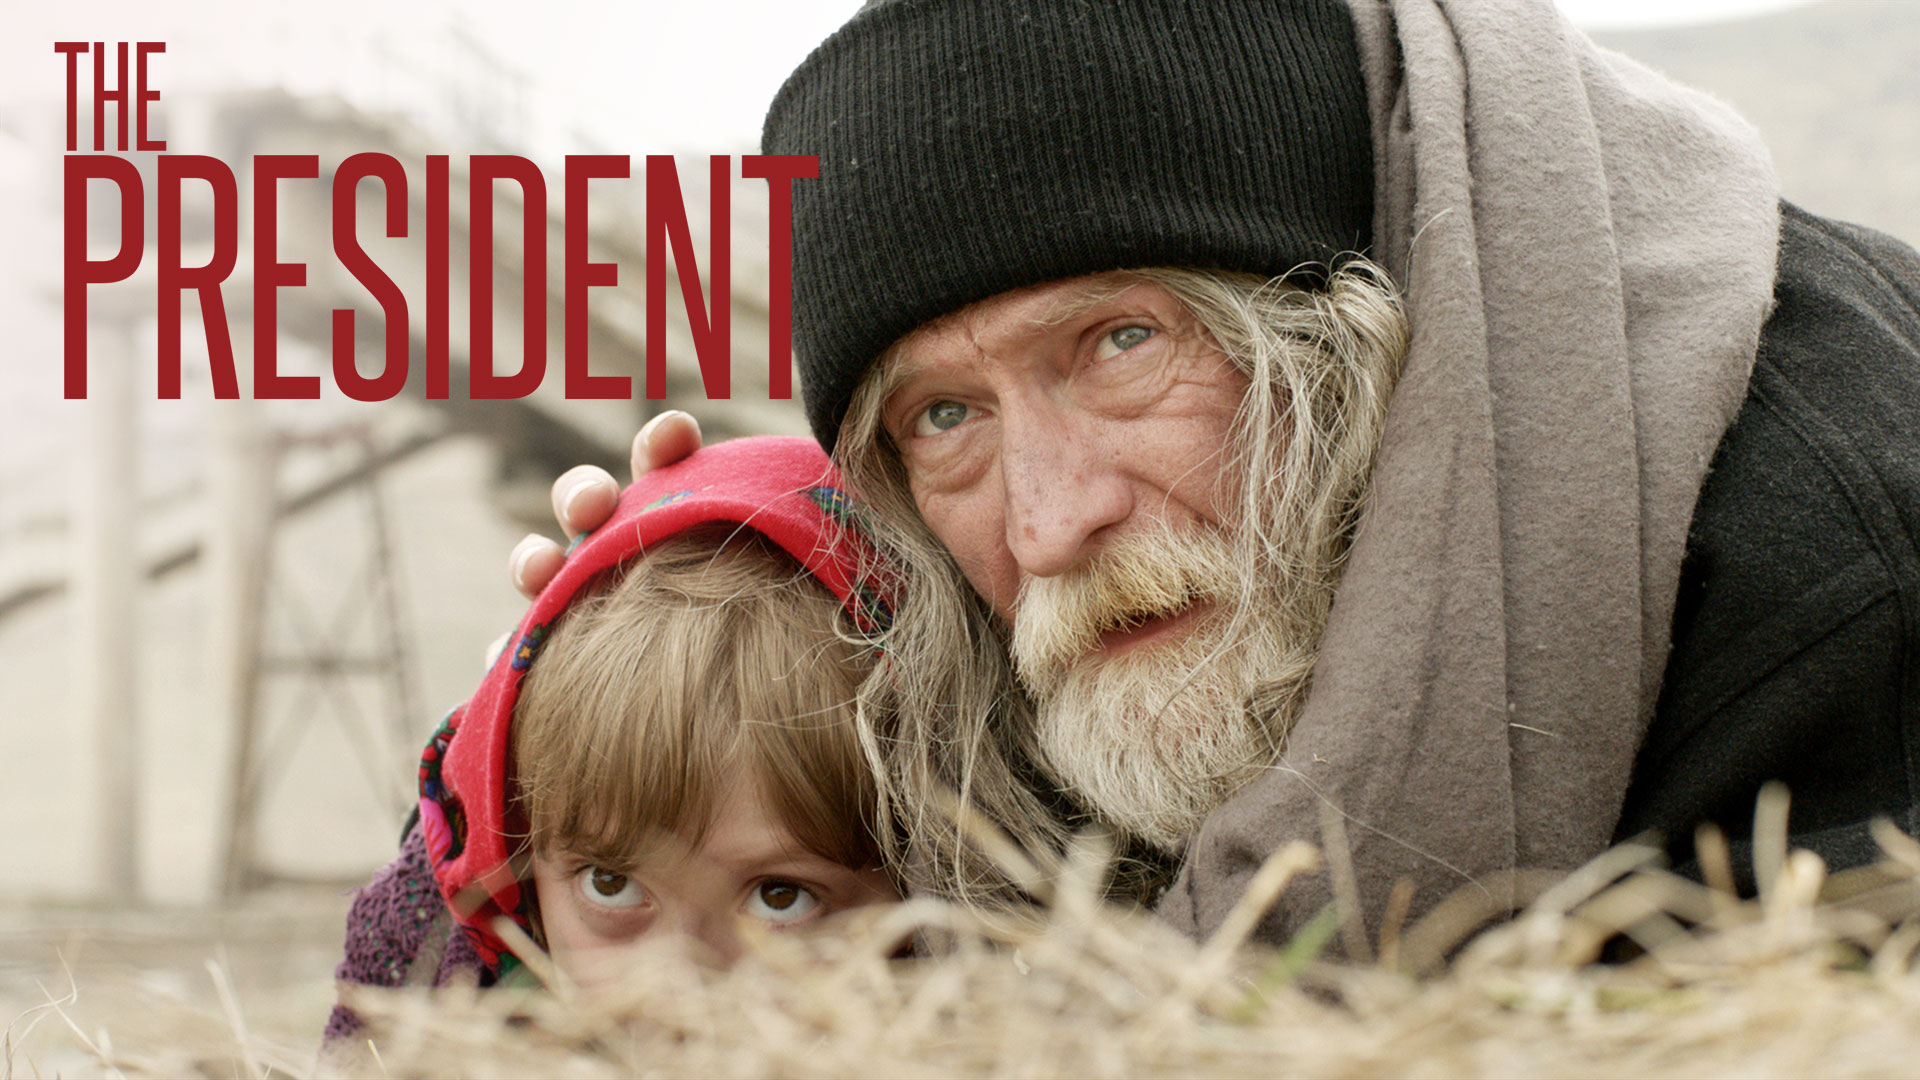 The President - Watch Now on Amazon Video